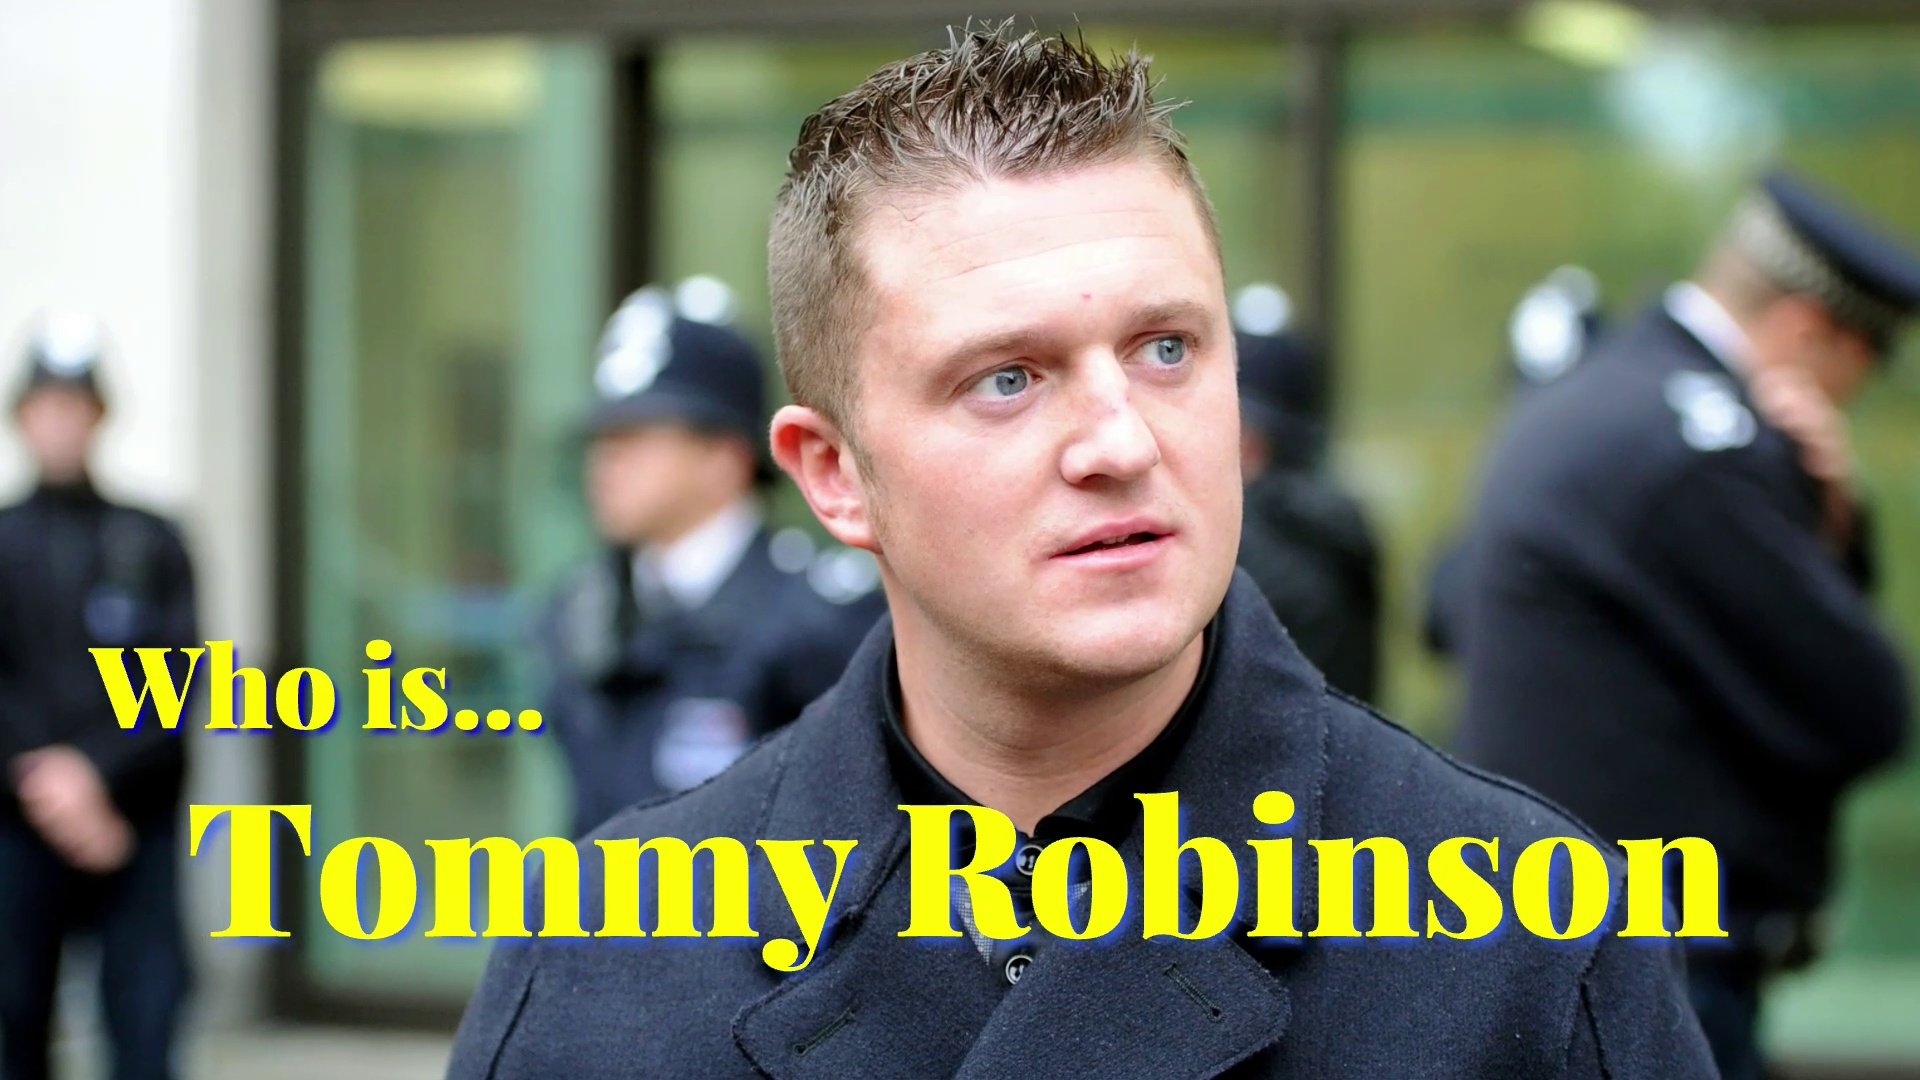 Tommy Robinson - Who is Tommy Robinson?